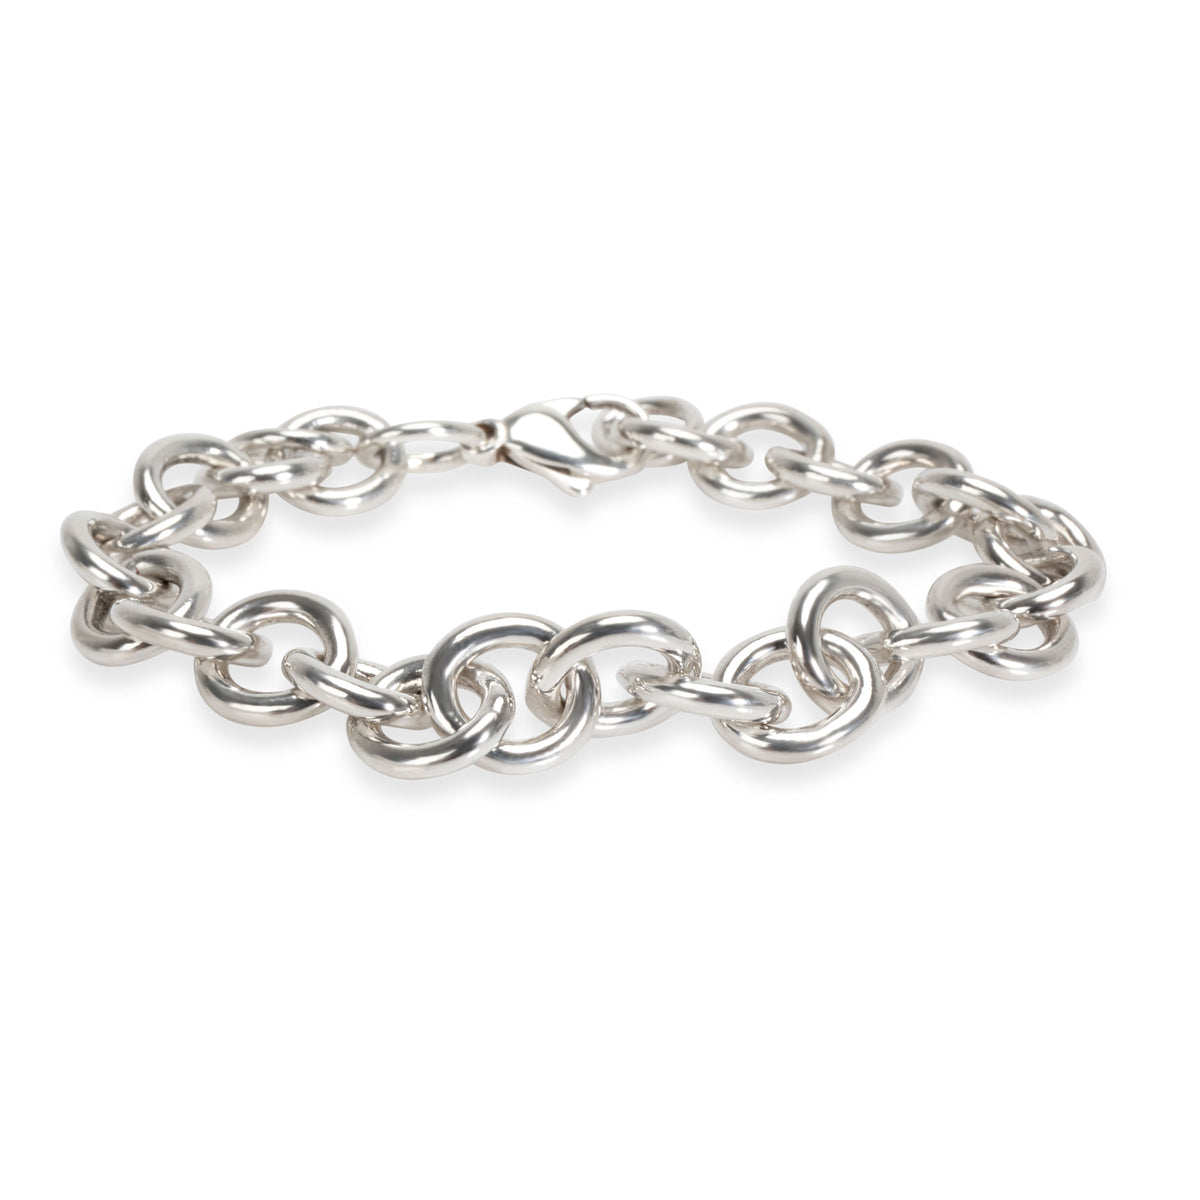 Tiffany & Co. Bracelet in  Sterling Silver